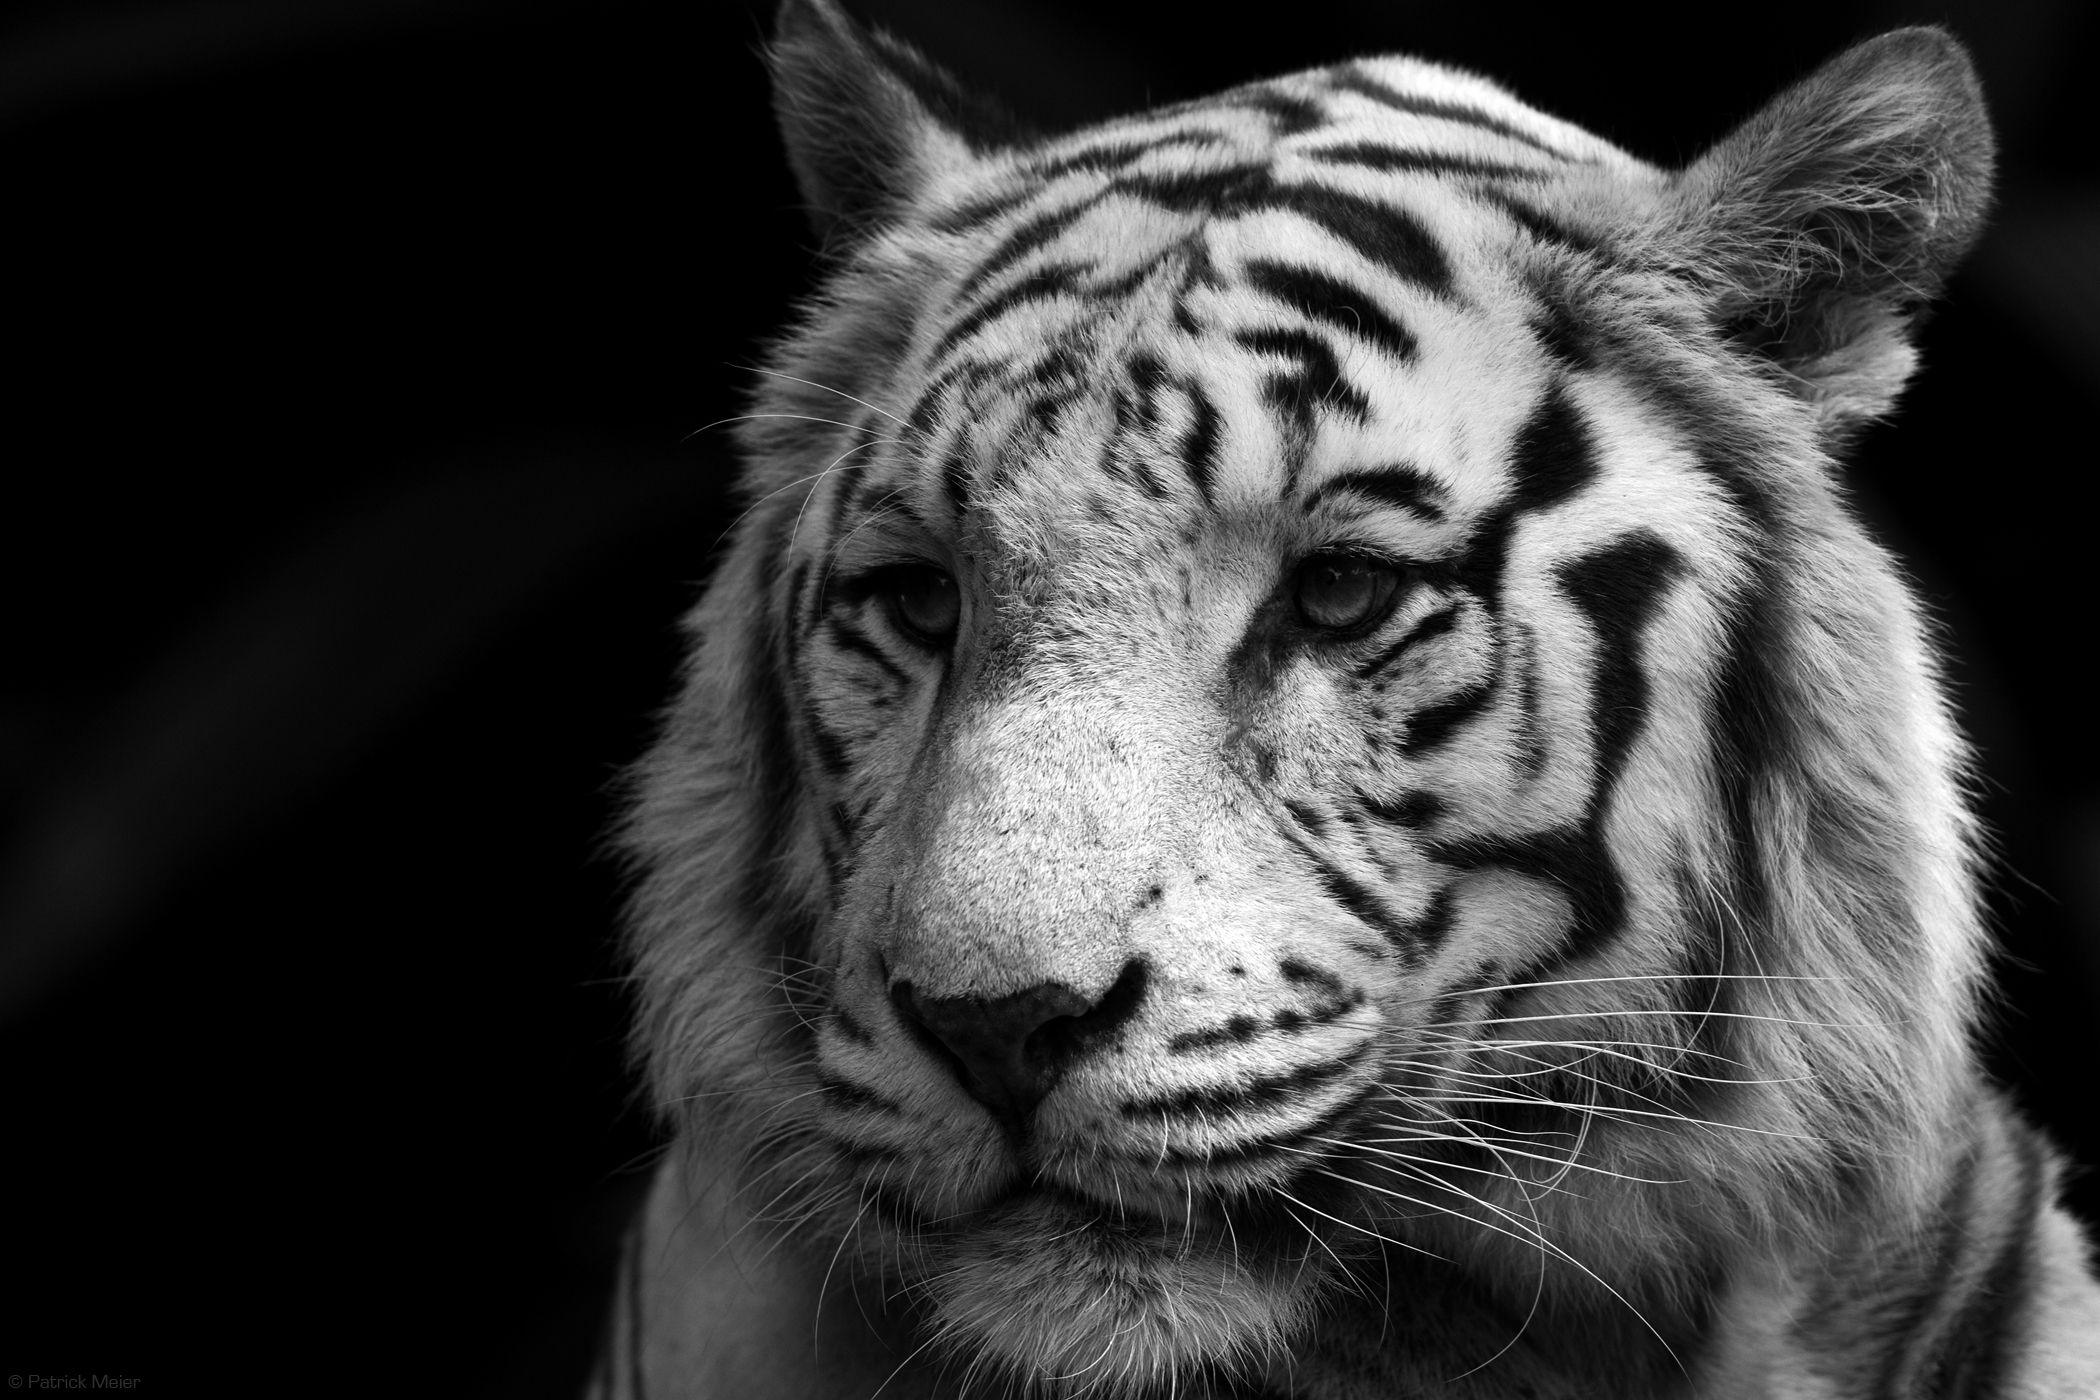 Image detail for Weisser Bengal Tiger, Singapur Zoo